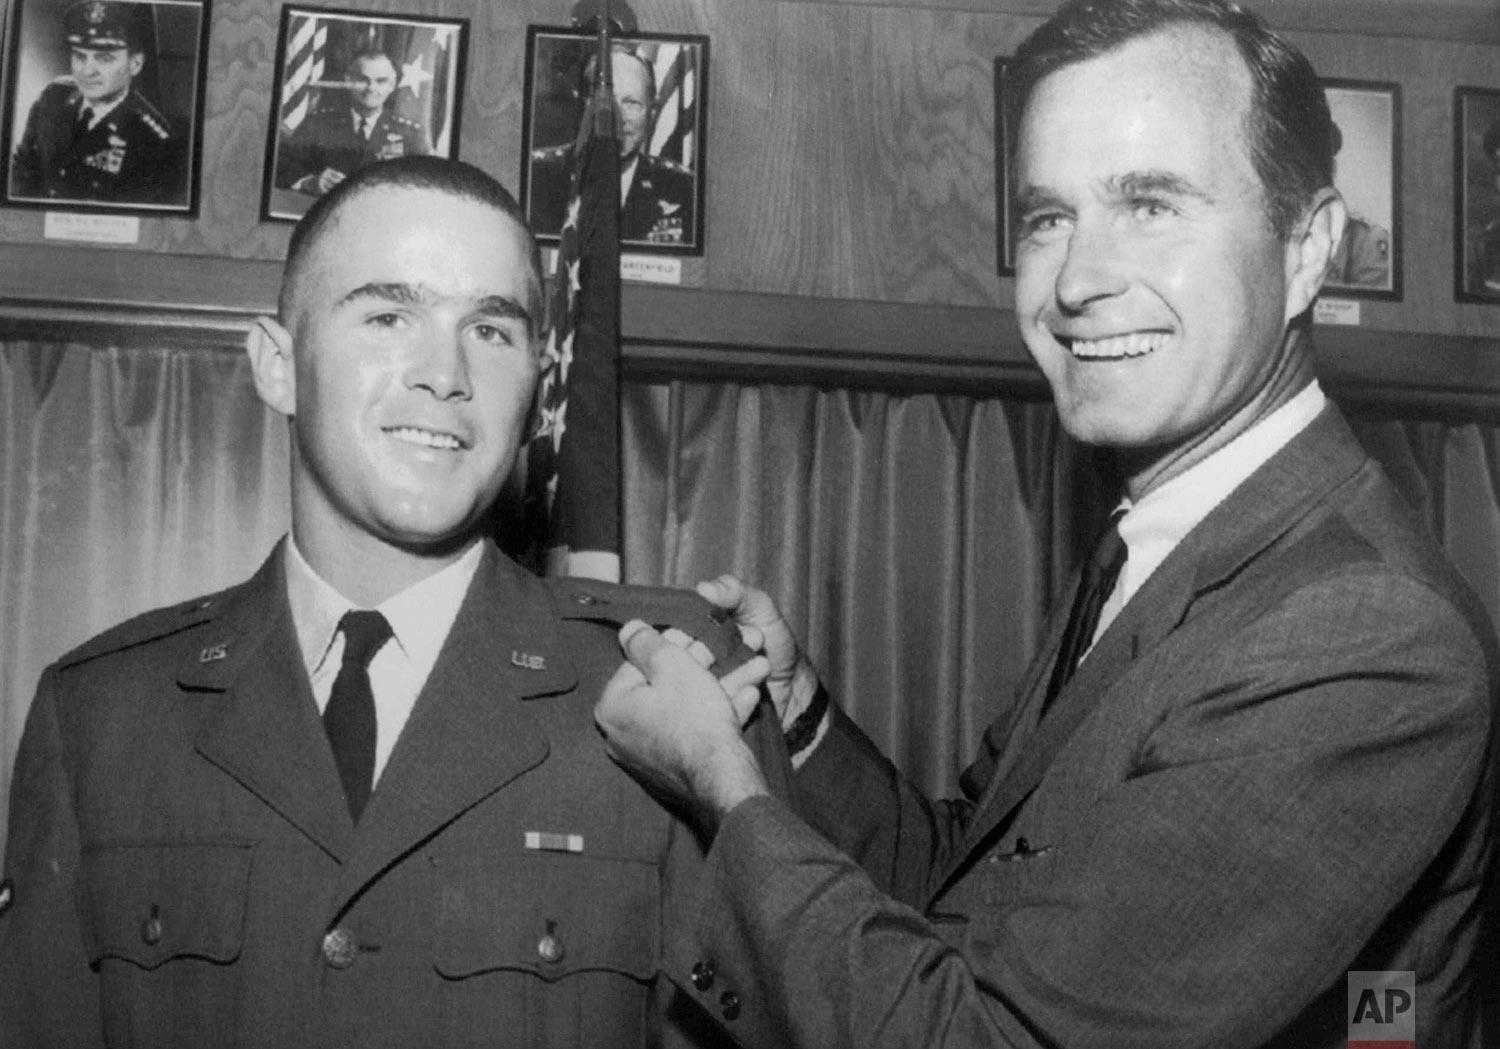 In this 1968 photo provided by the Texas National Guard, George H.W. Bush, right, is about to pin a lieutenant bar on his son, George W. Bush, after the younger Bush was made an officer in the Texas Air National Guard in Ellington Field, Texas. (Texas National Guard via AP)